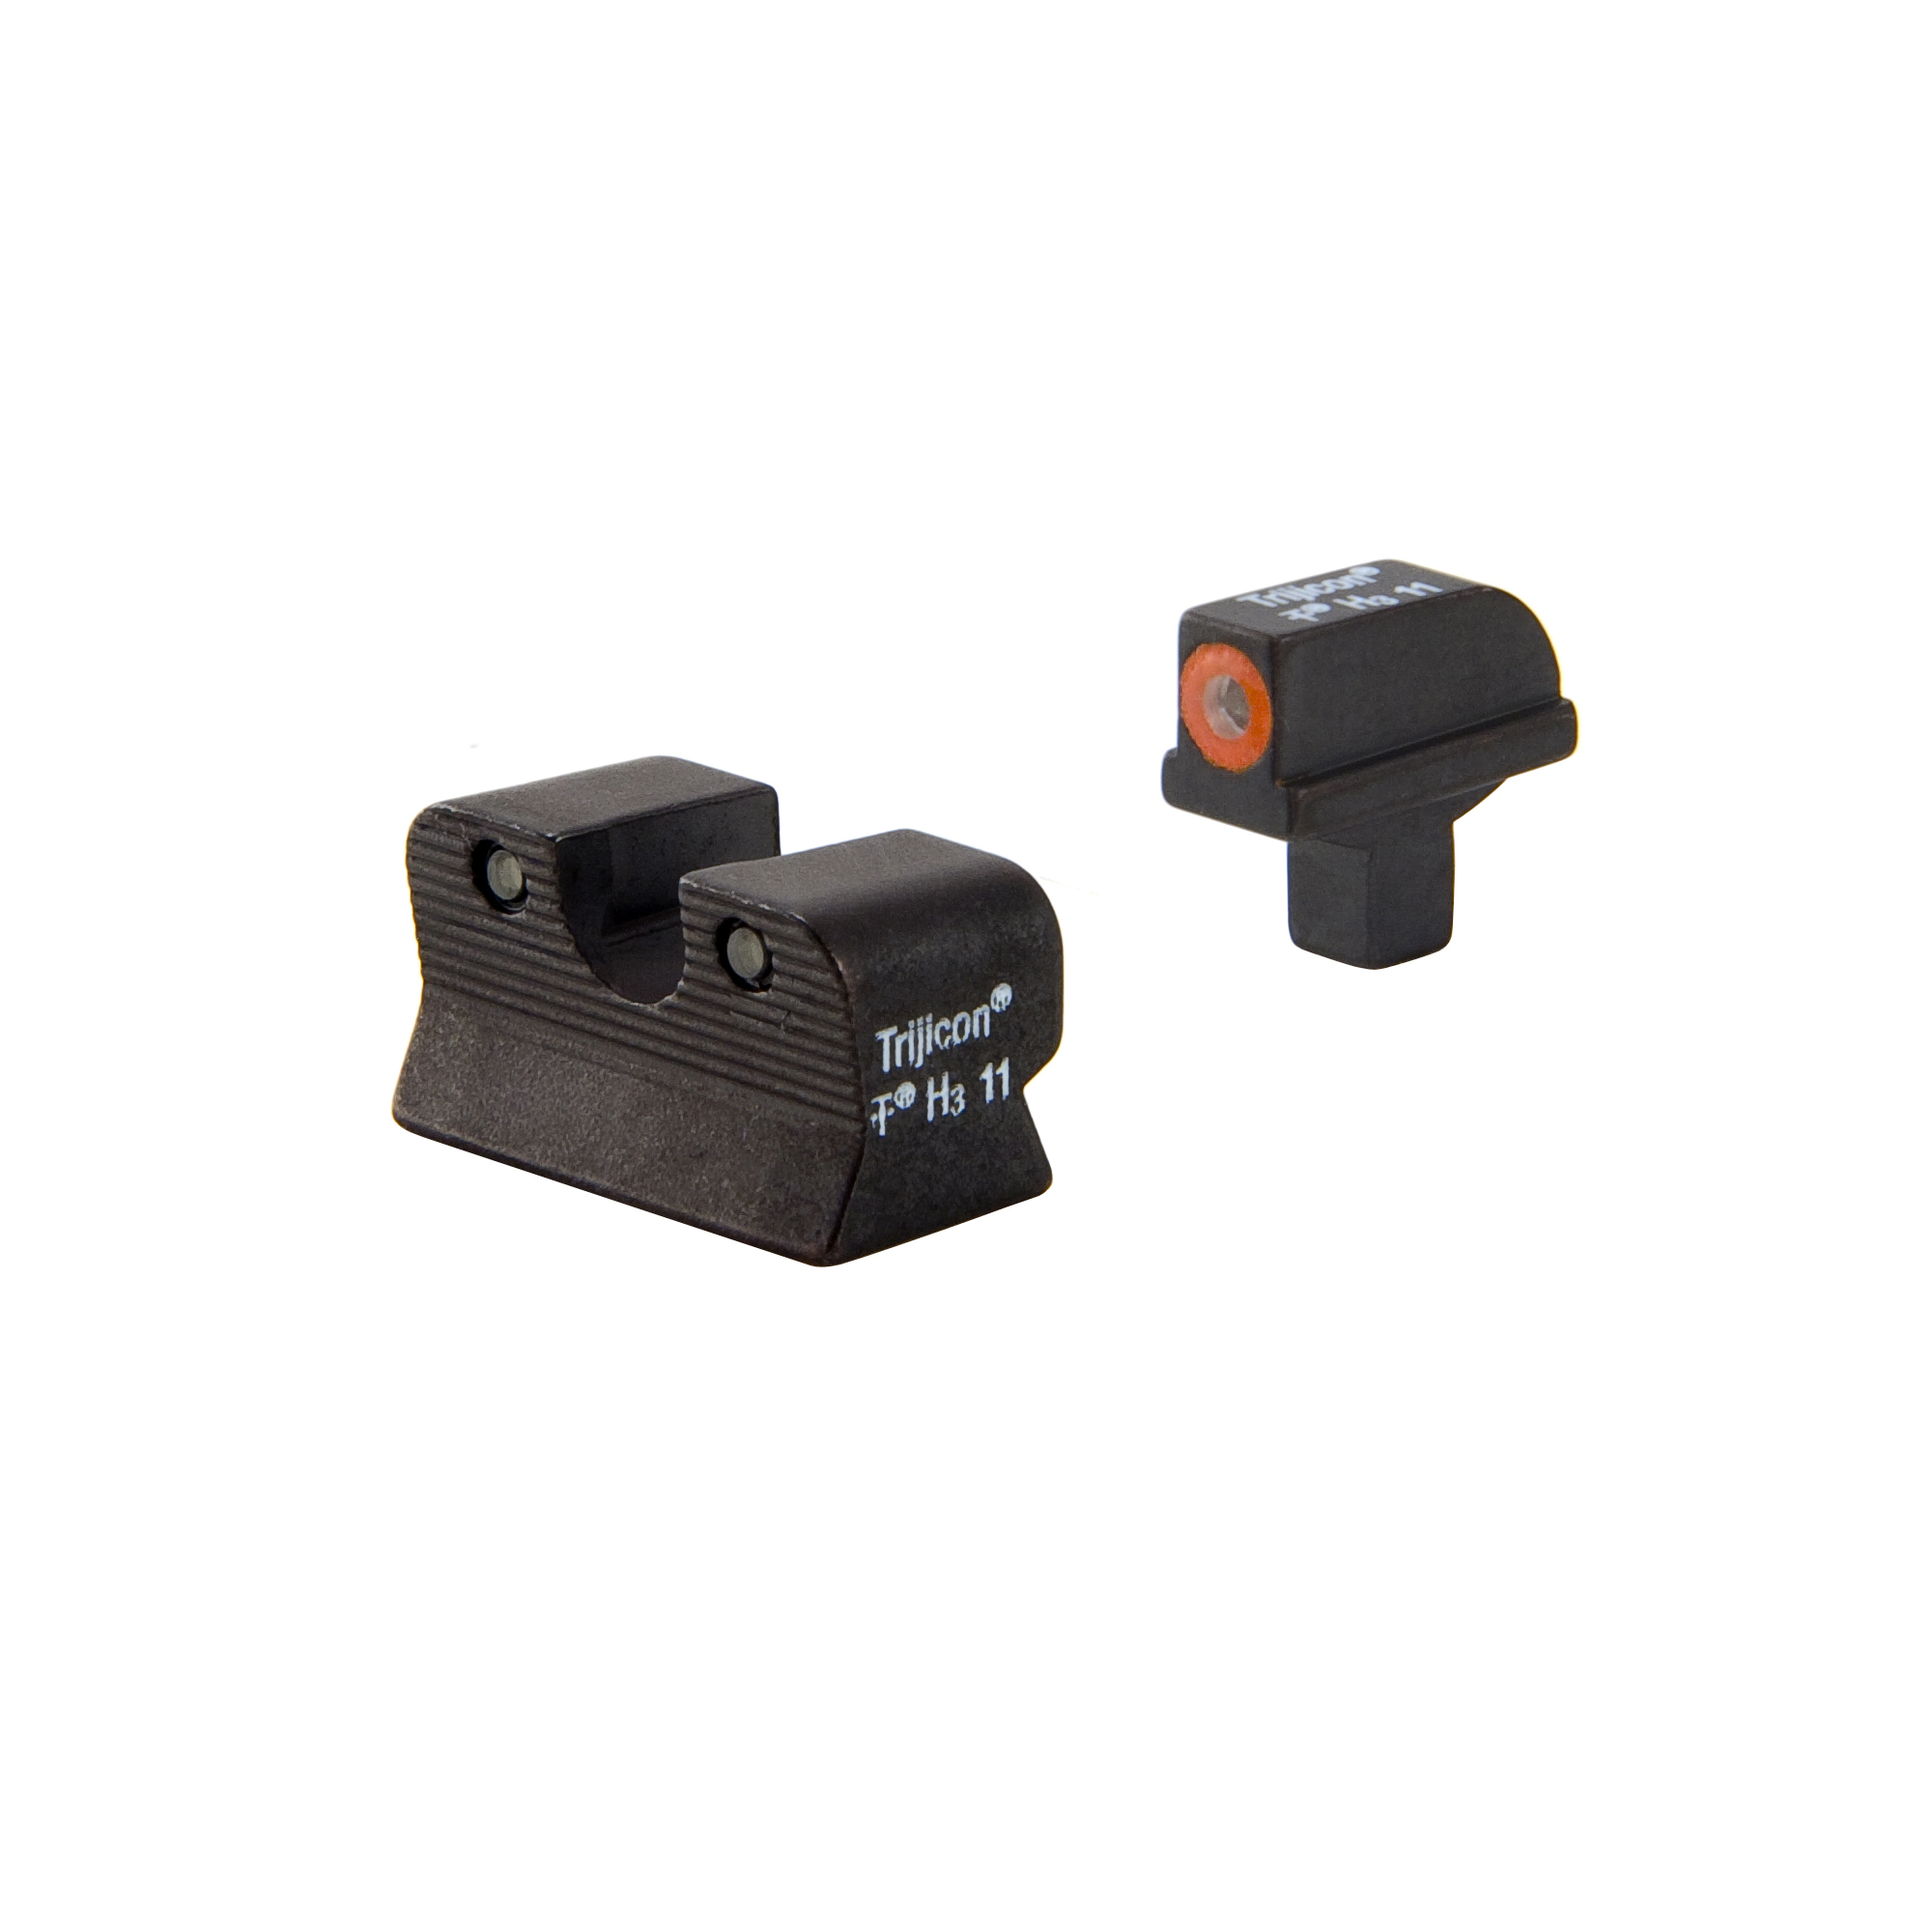 Click here to buy Trijicon HD Night Sight Set 1911 Colt Cut, Orange Front Outline Lamp by Trijicon.